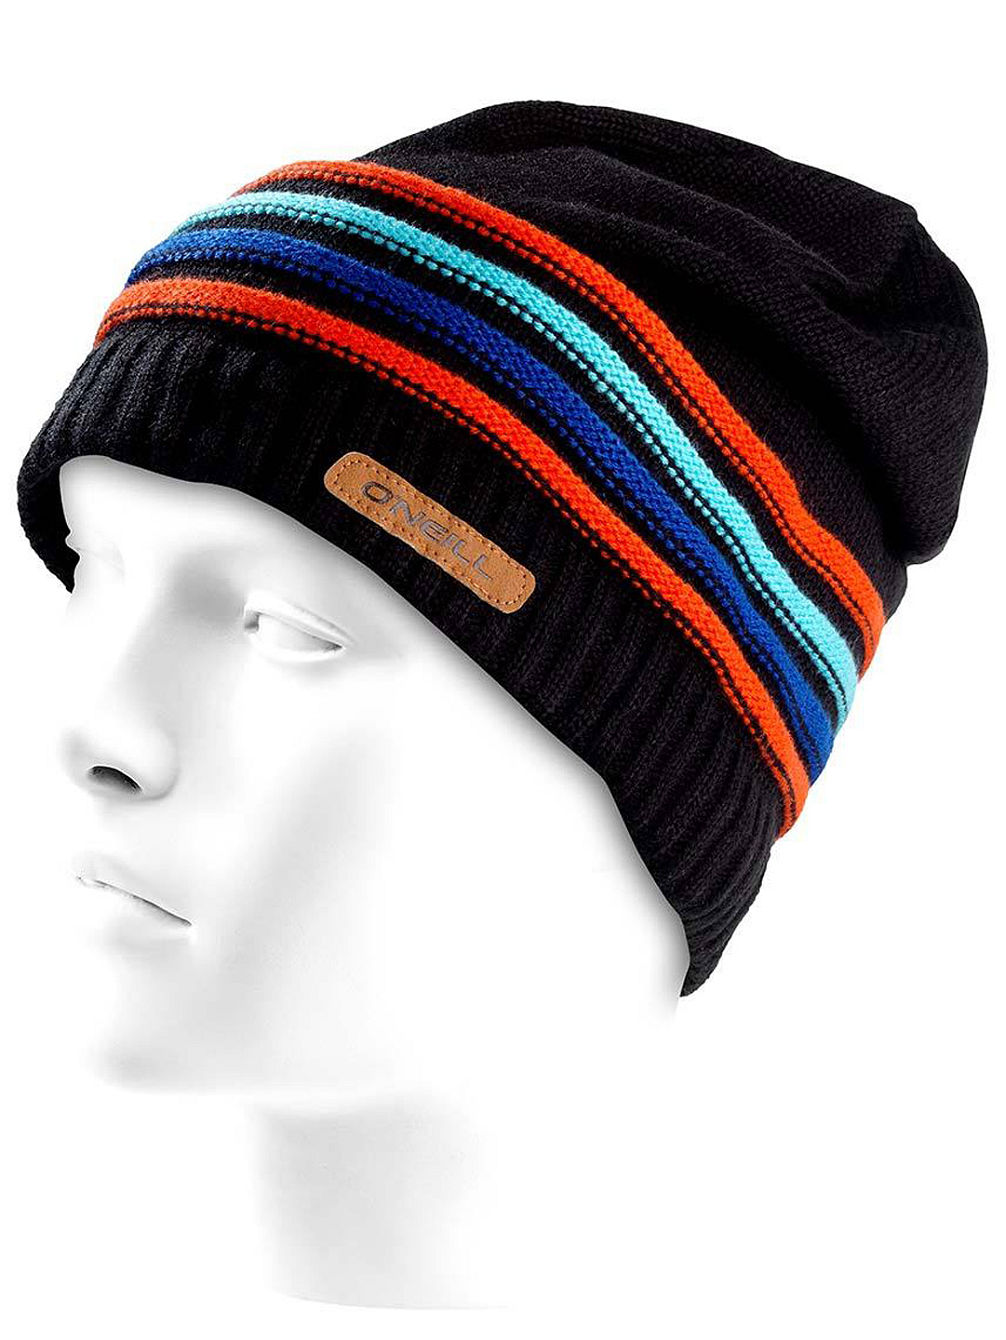 0c7a993d4e1 Buy O Neill Laax Beanie online at blue-tomato.com